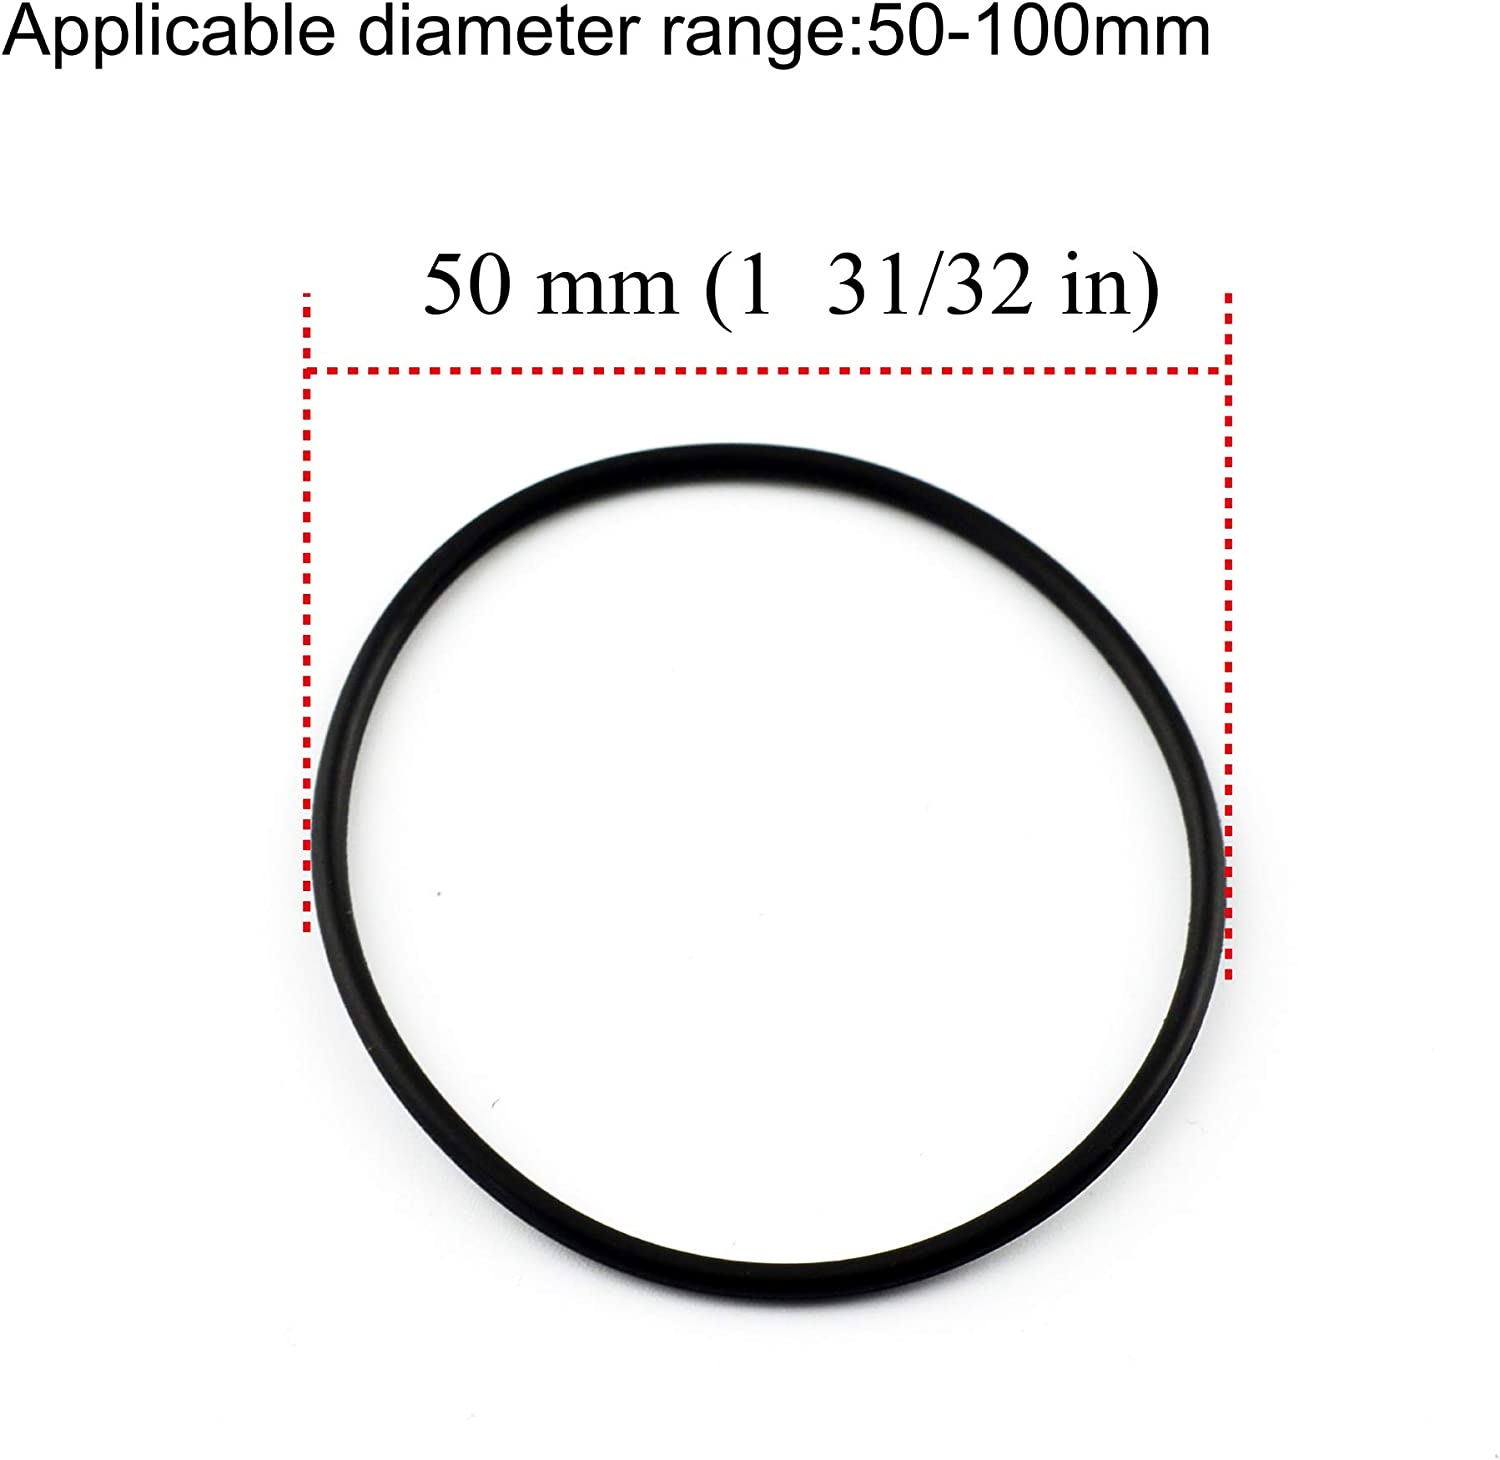 4pcs 68mm Black Wheel Center Cap Rubber O-Rings with 50-100mm Clip to Clip Diameter Universal Wheel Center Caps for #Rays Volk TE37 654F RS6 XXR 527 531 and 4pcs 50mm 1.97in 62mm 2.67in 2.42in